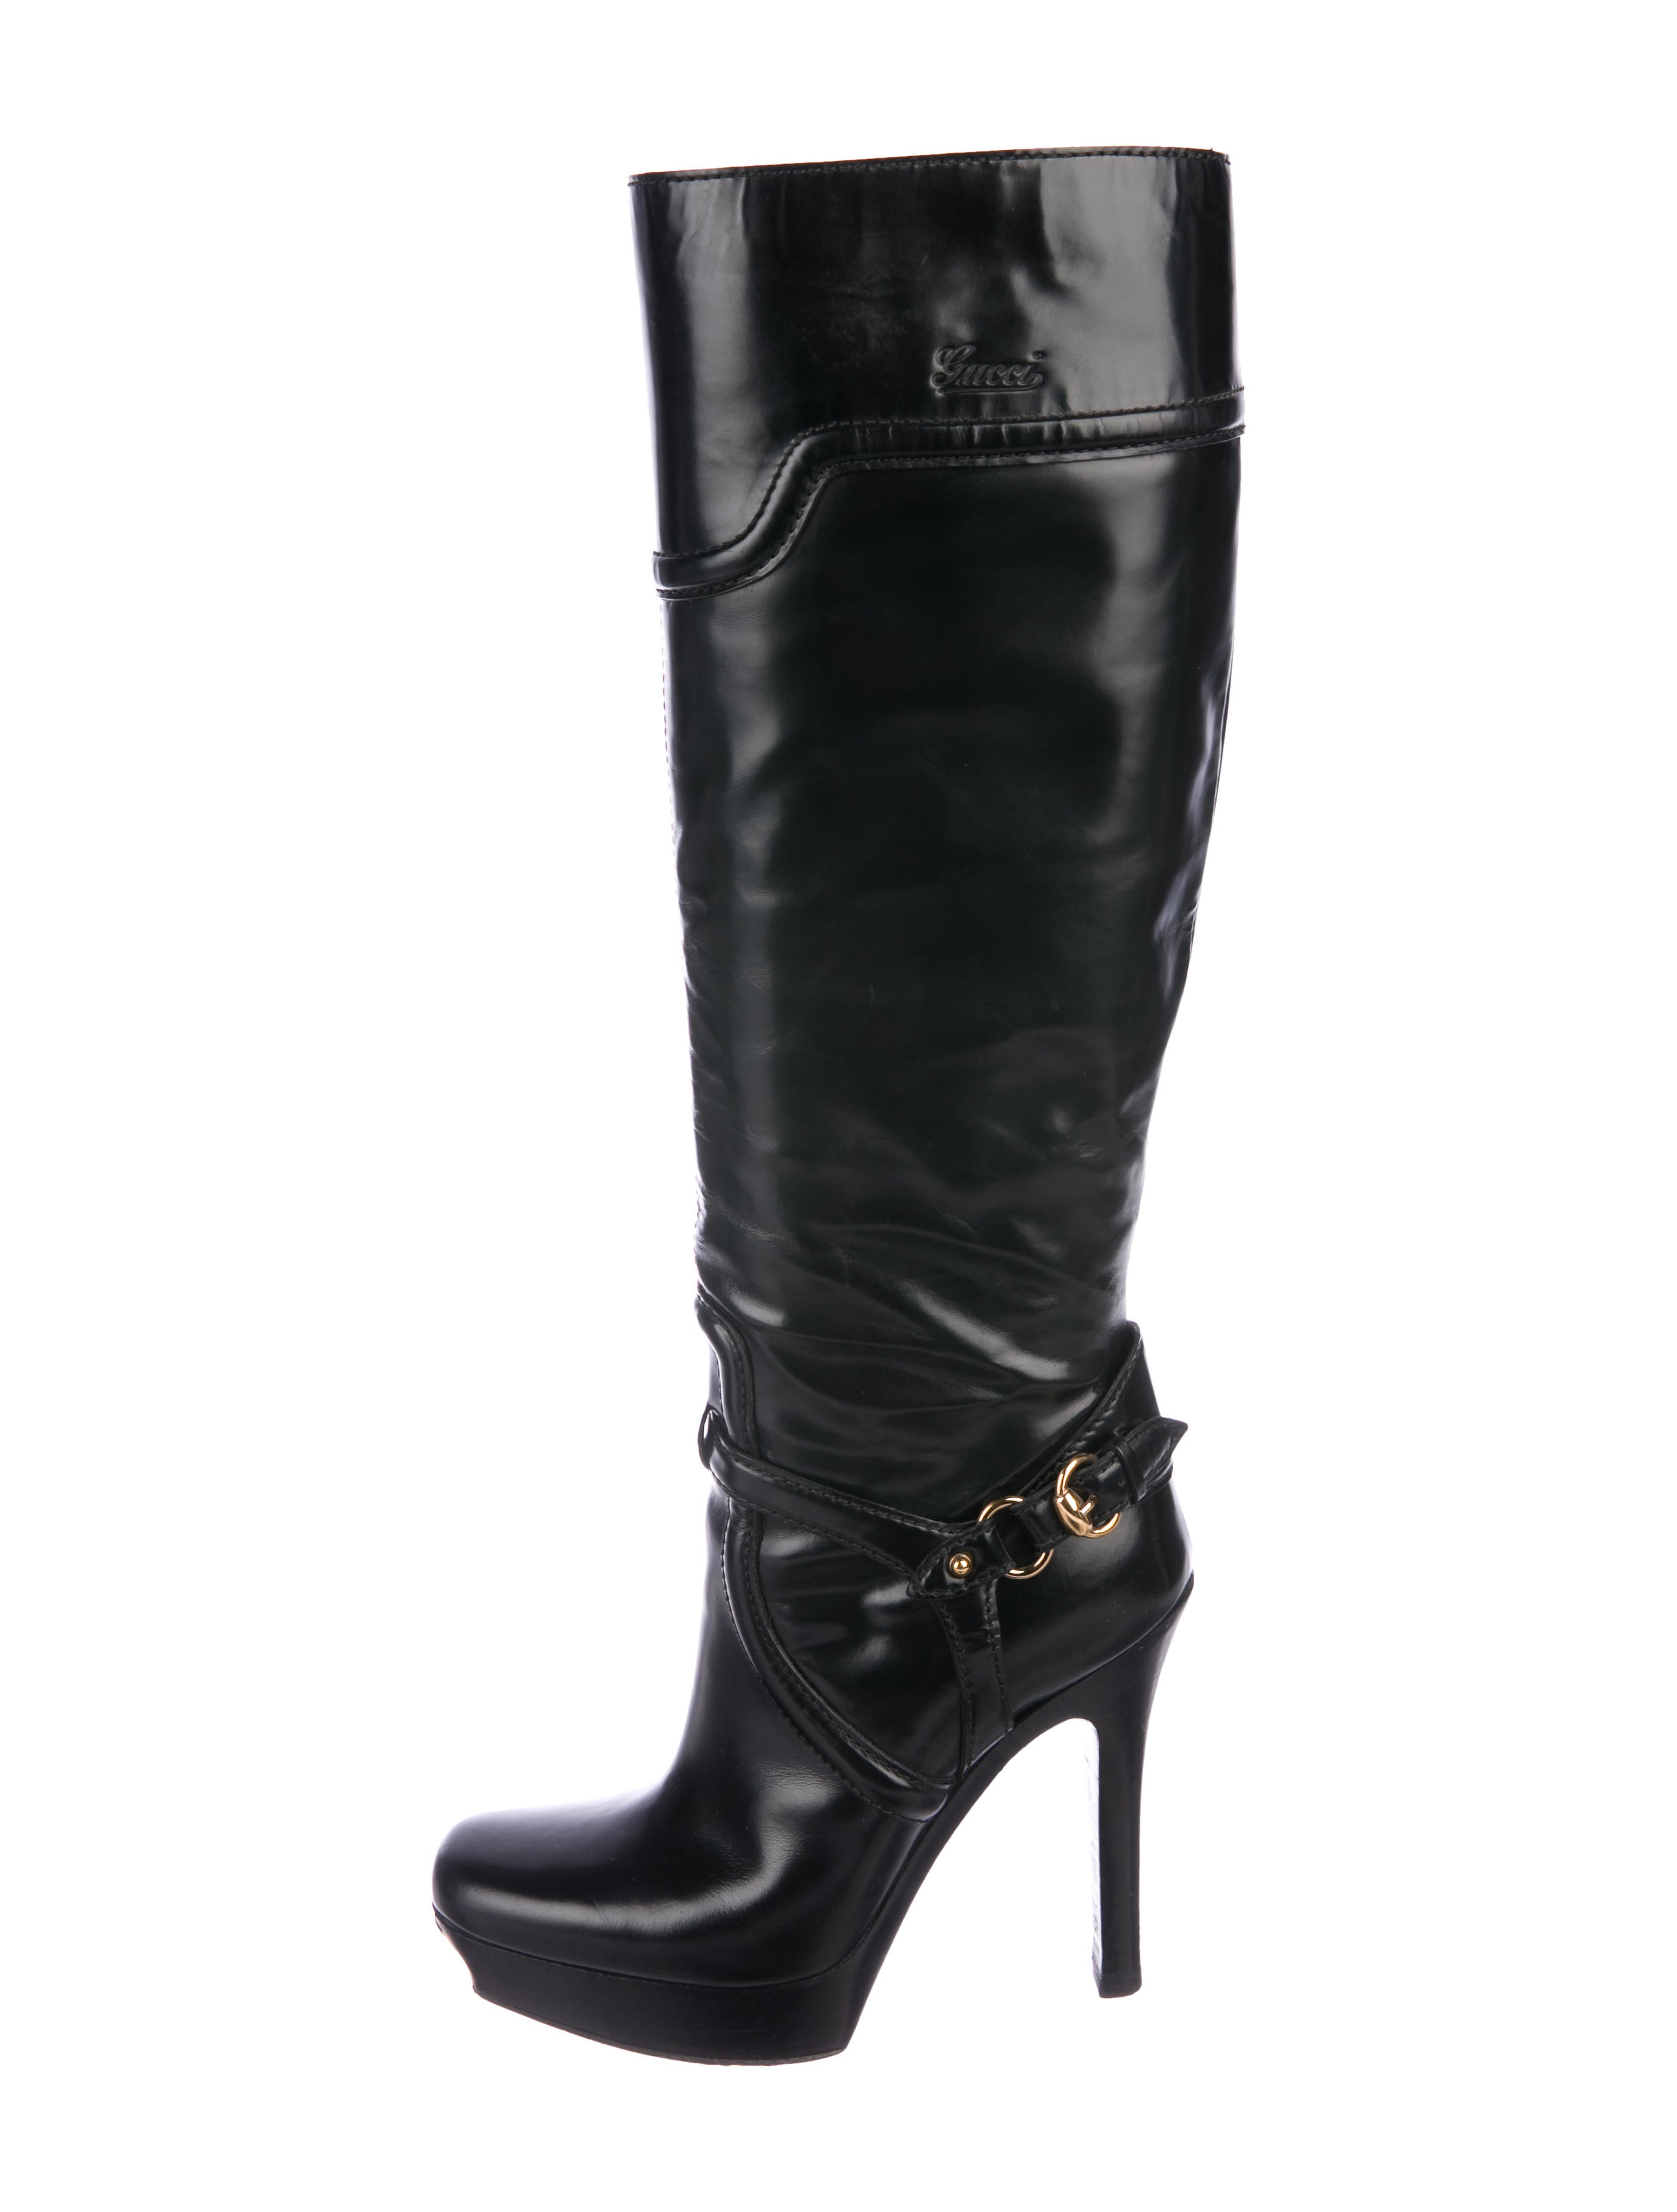 3ad5fc3206a Gucci Knee-High Stirrup Boots - Shoes - GUC223238